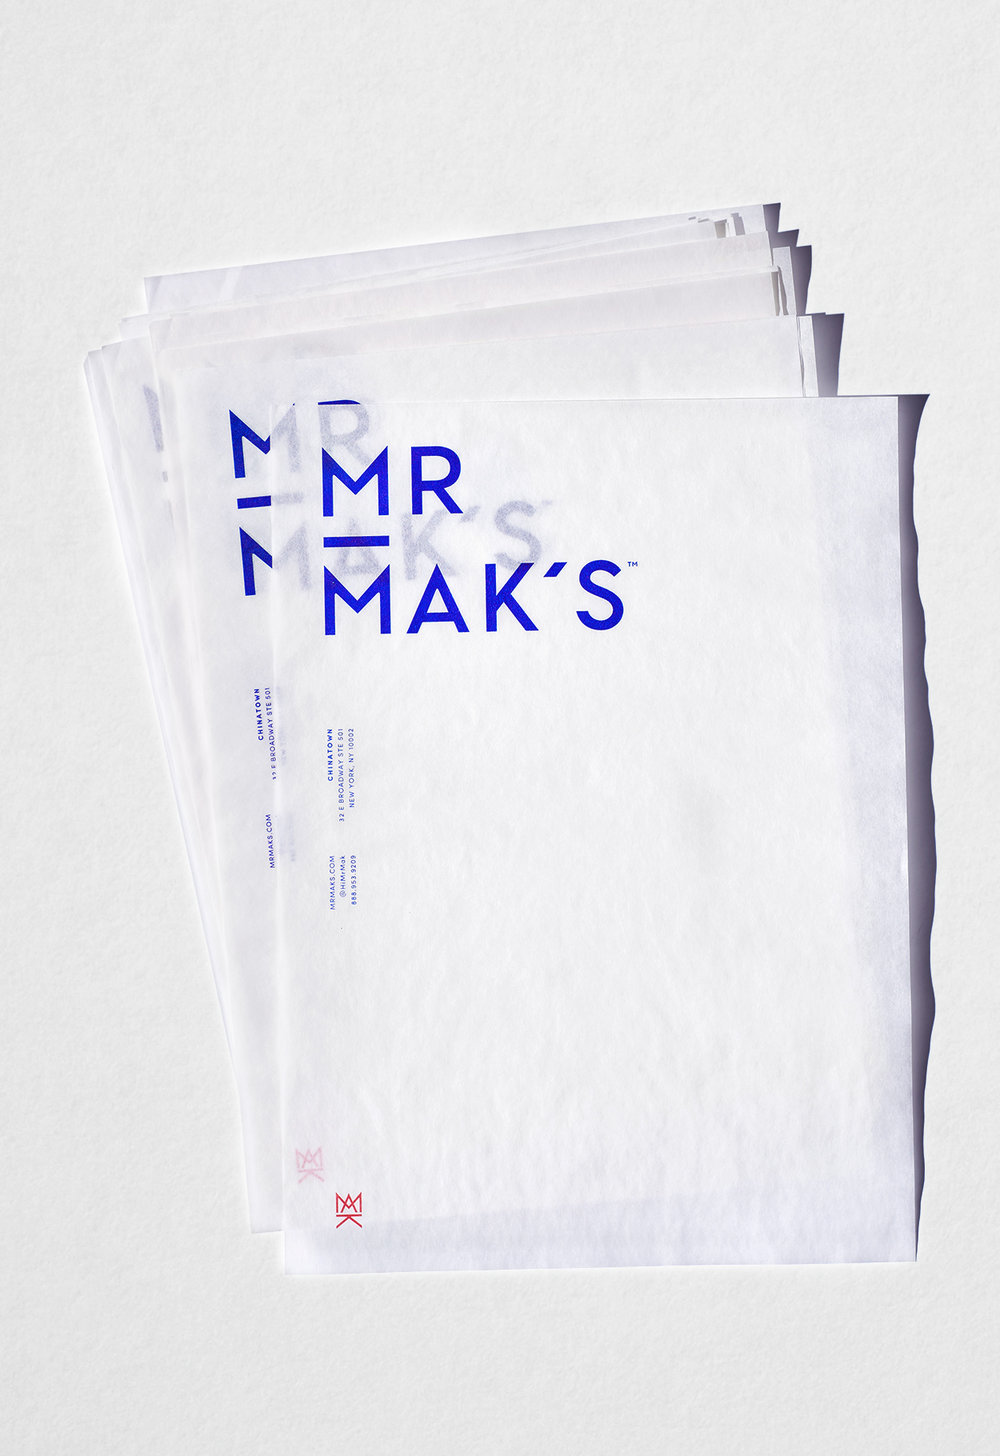 Mr. Mak's letterhead designed by Abby Haddican at Werner Design Werks